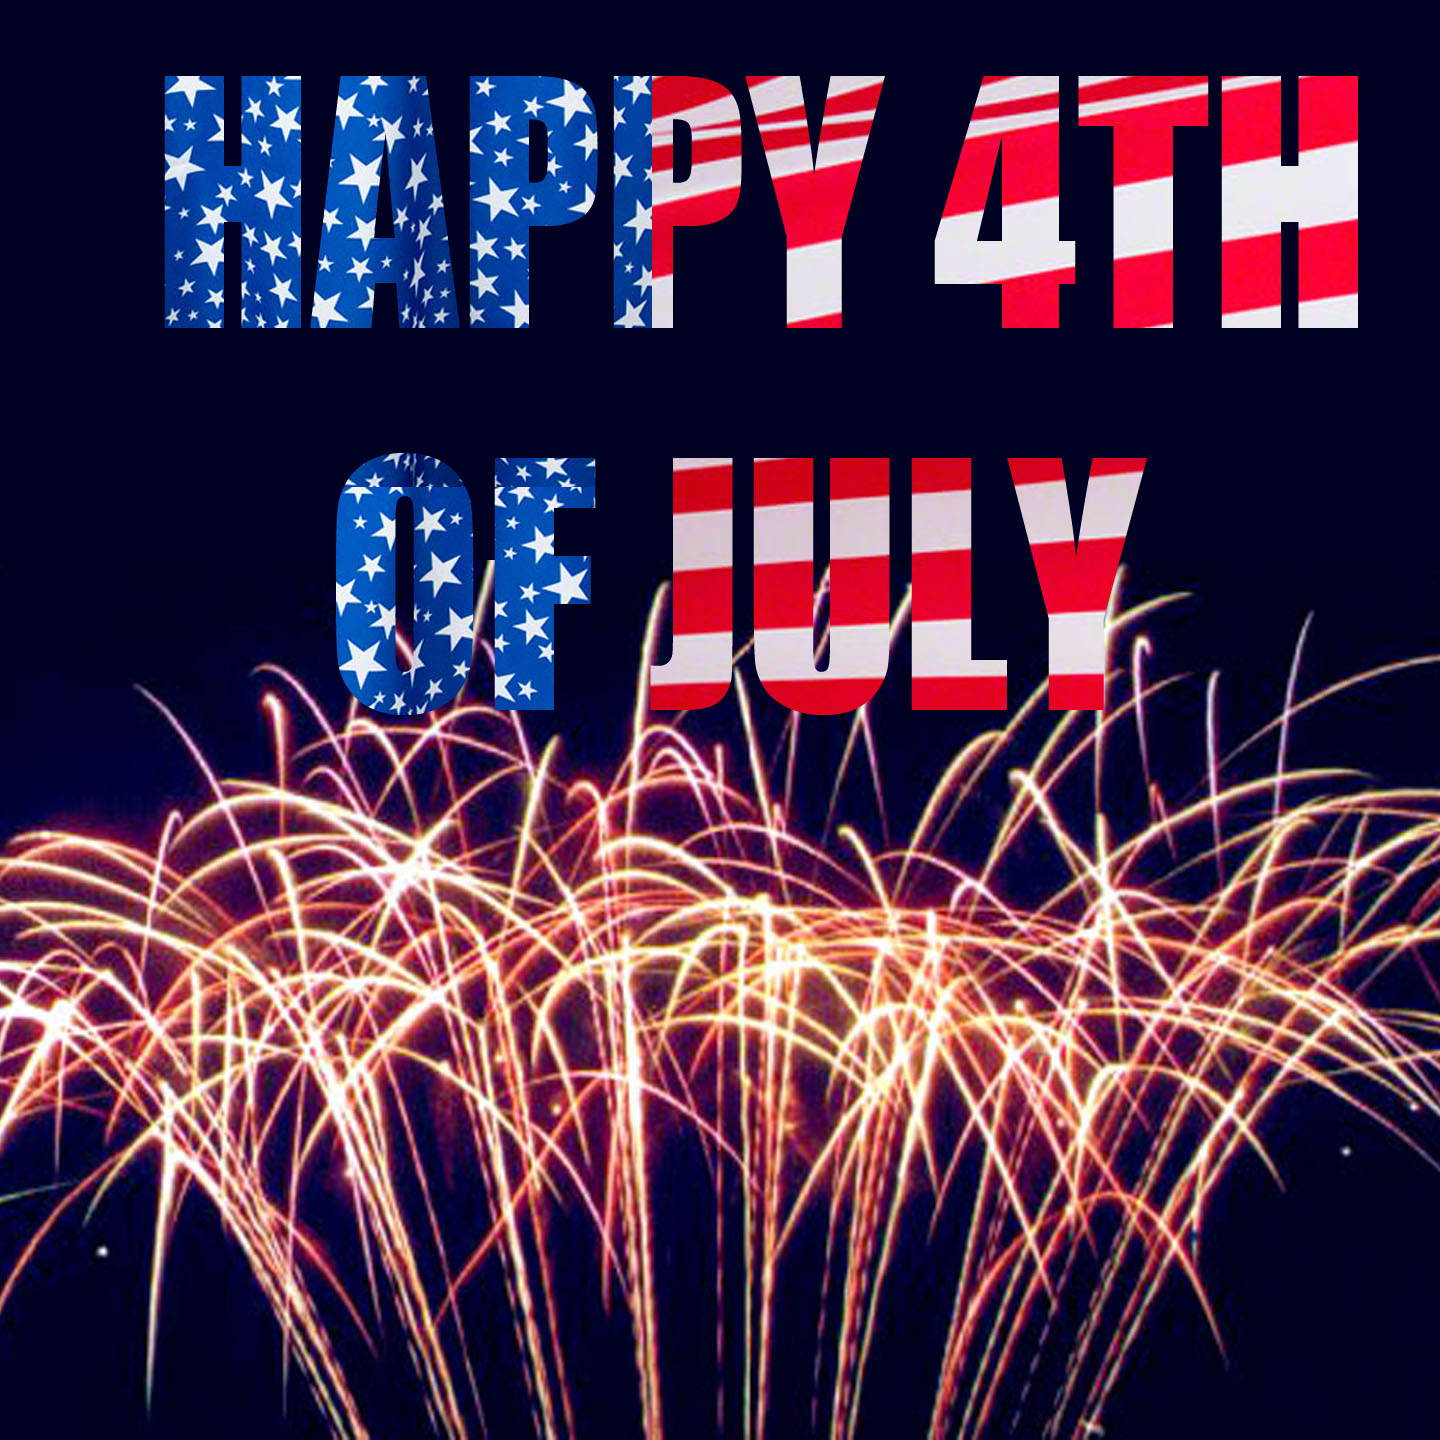 Happy 4th of July Images For Whatsapp